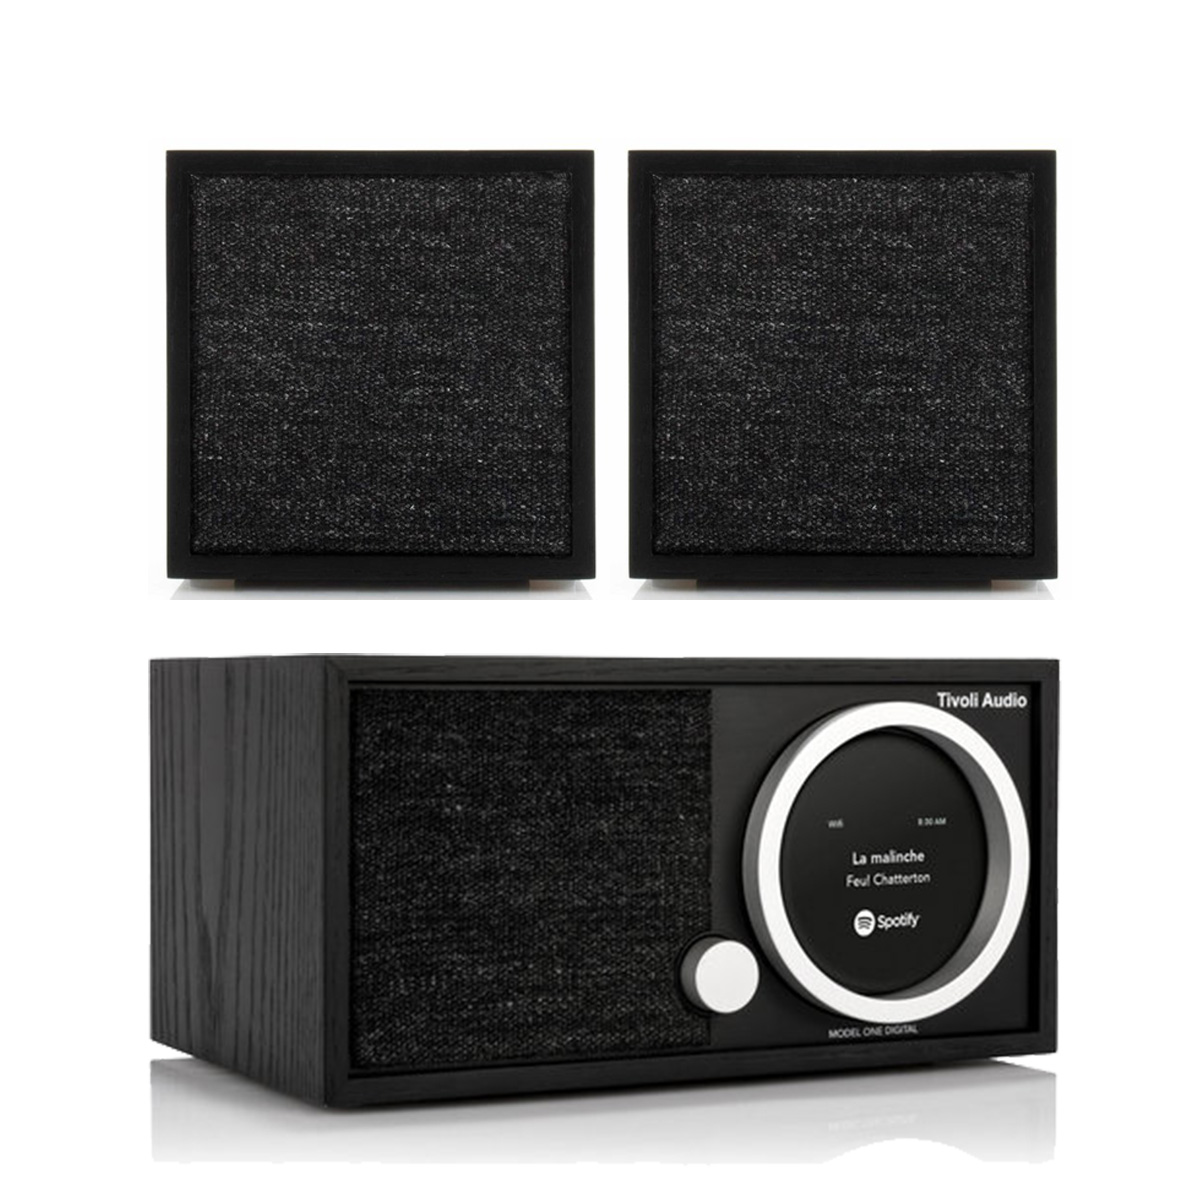 Tivoli Audio Model One Digital FM Wi-Fi Bluetooth Radio Wireless Stereo Music System with CUBE Speakers Pair by Tivoli Audio